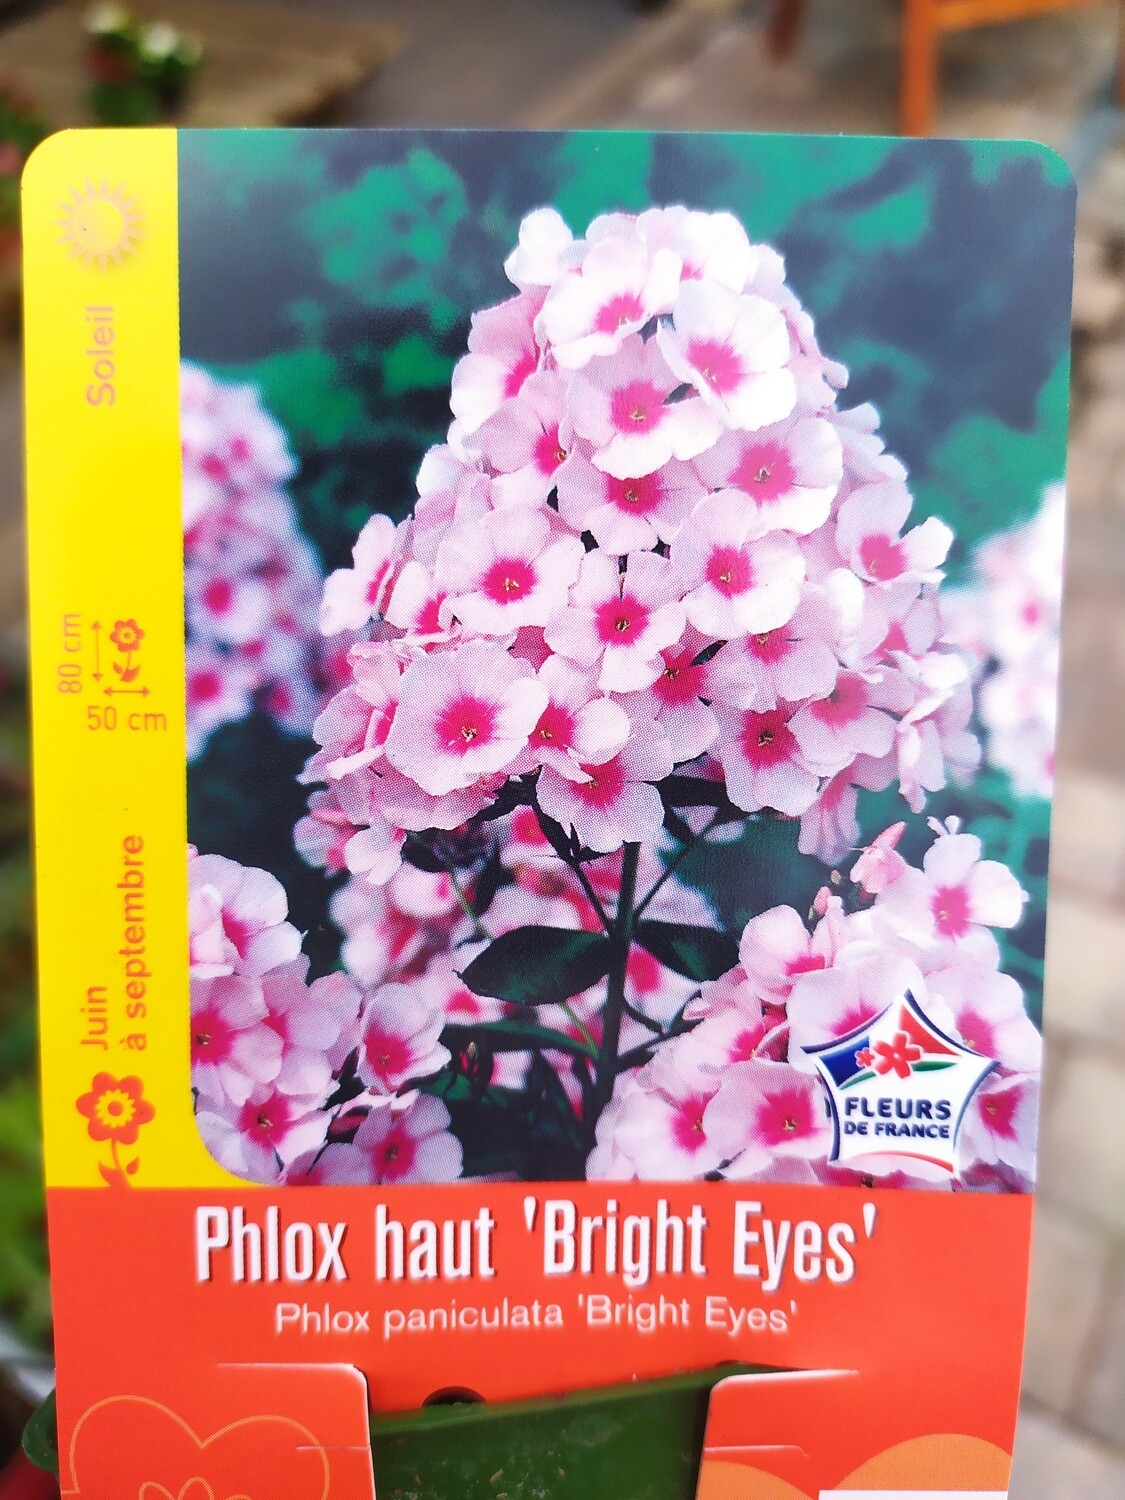 PHLOX HAUT 'BRIGHT EYES'